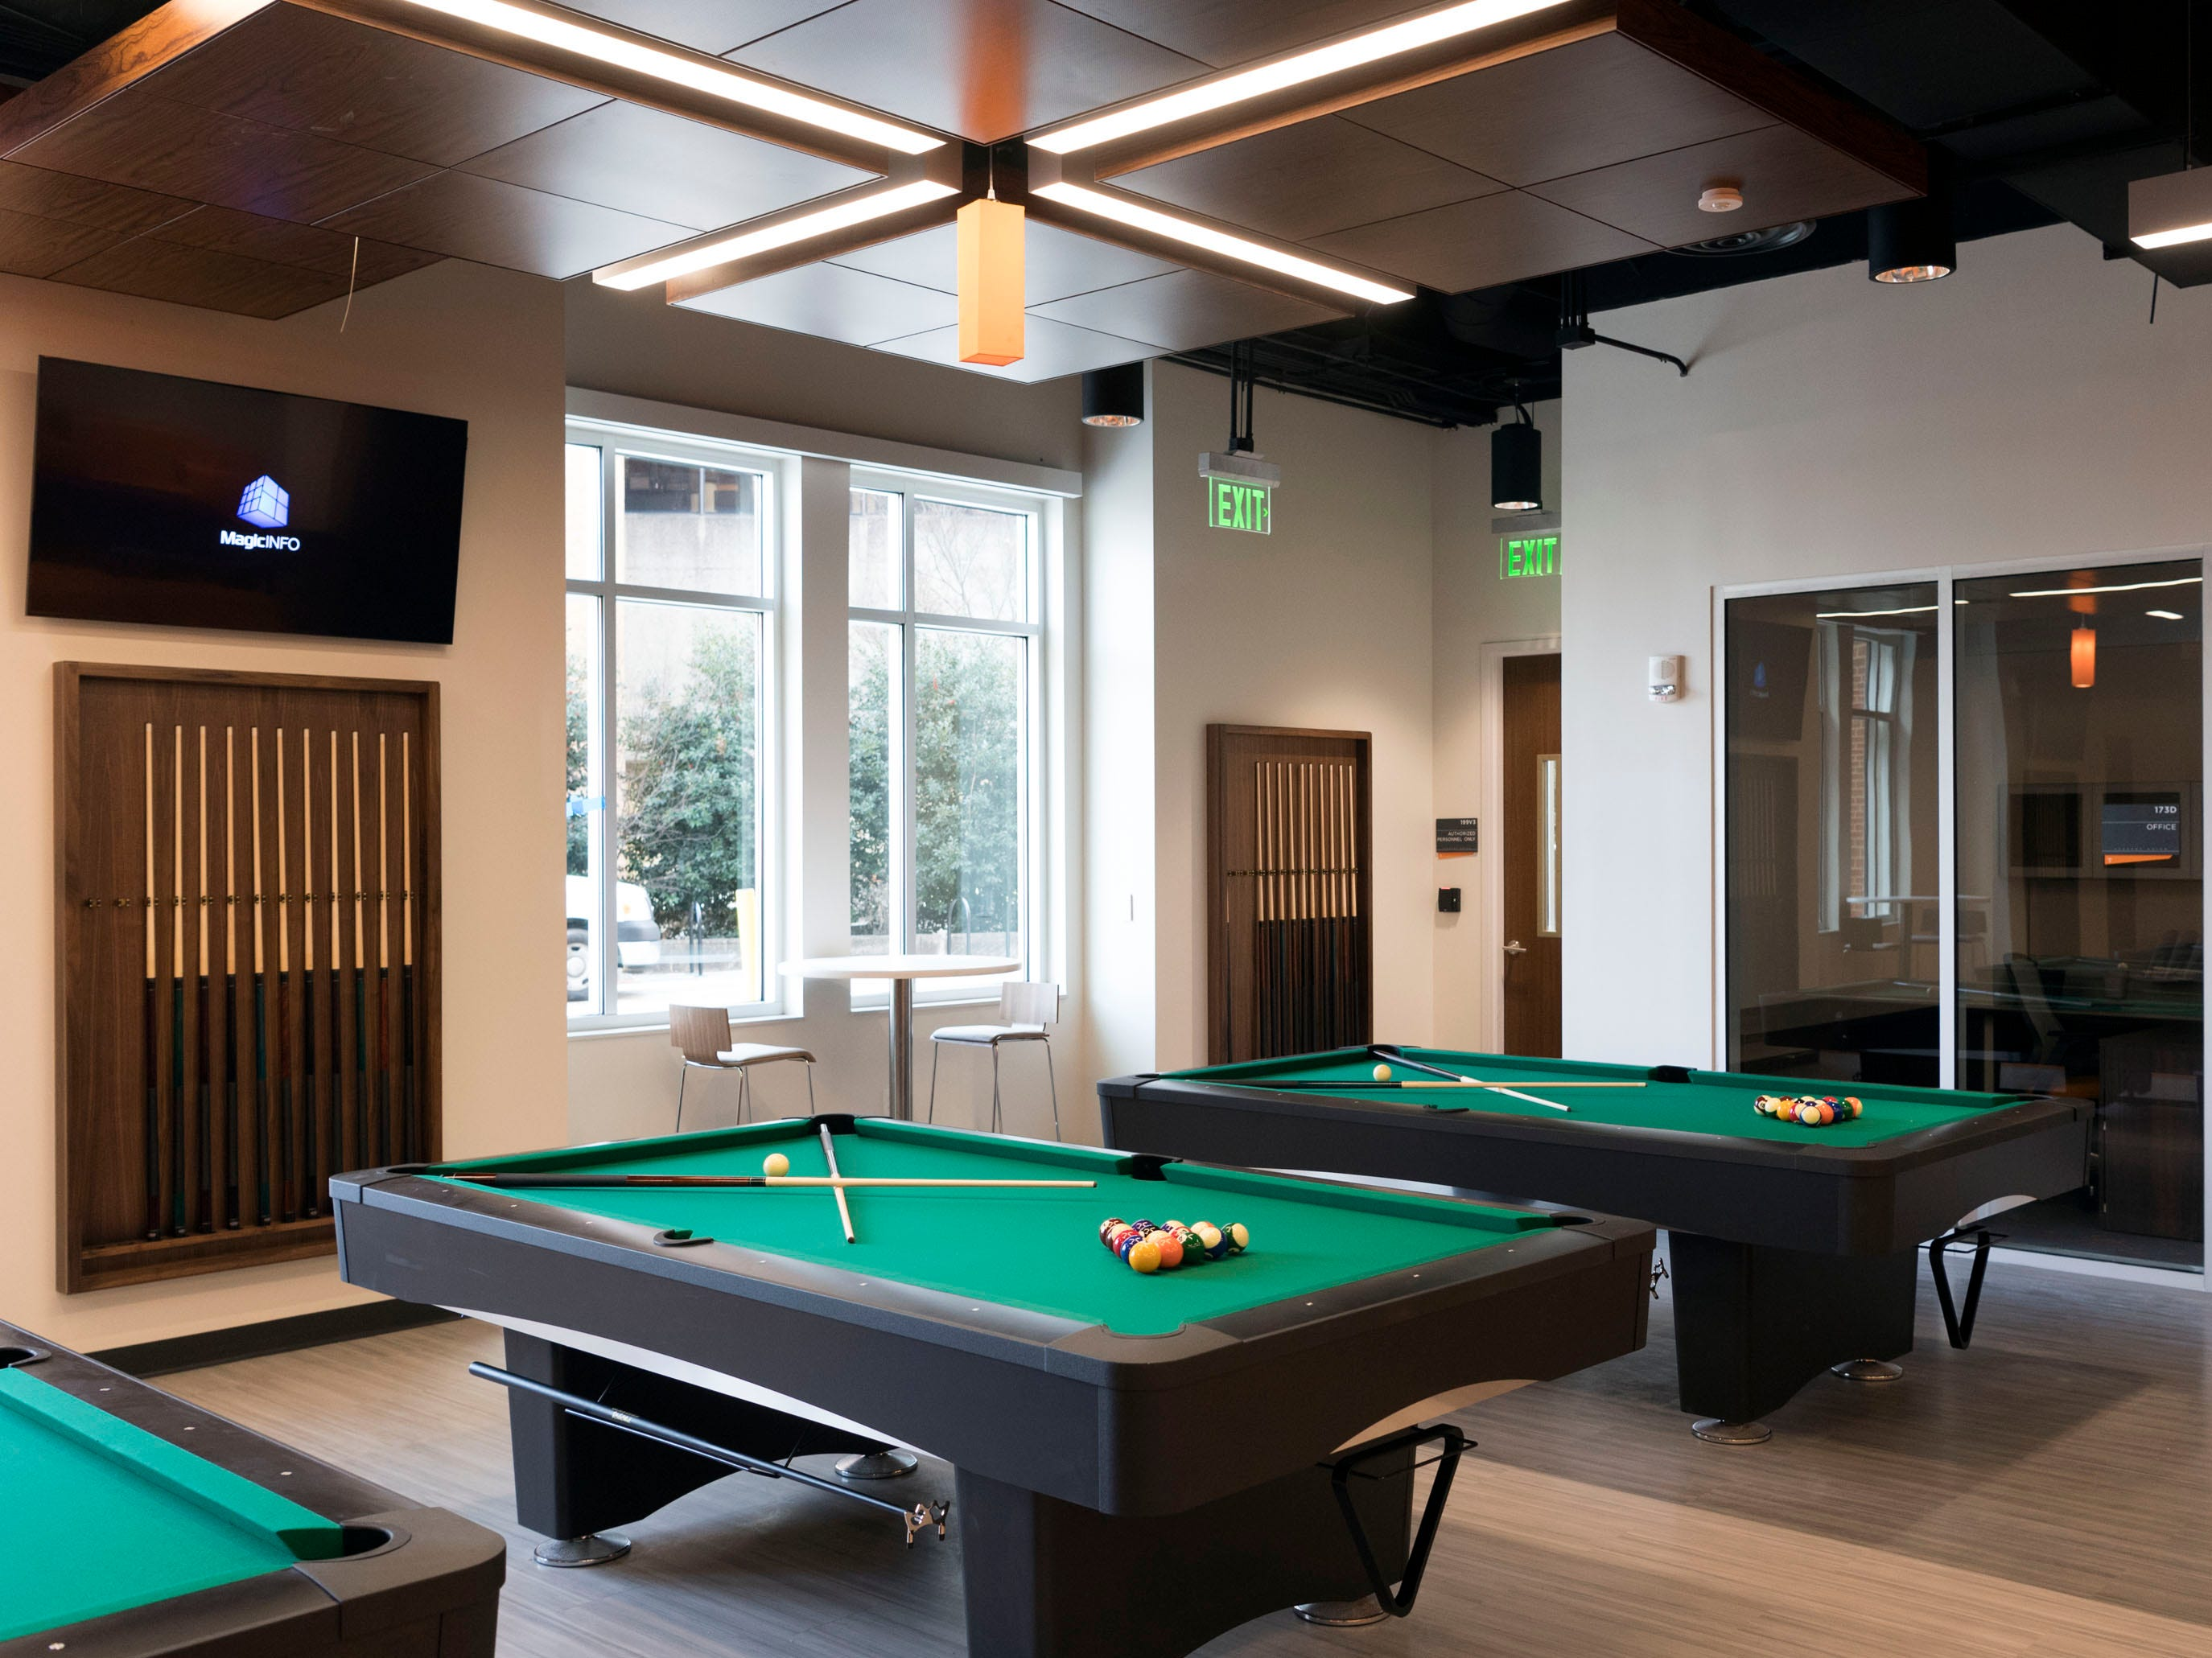 A recreation room at University of Tennessee's Student Union.